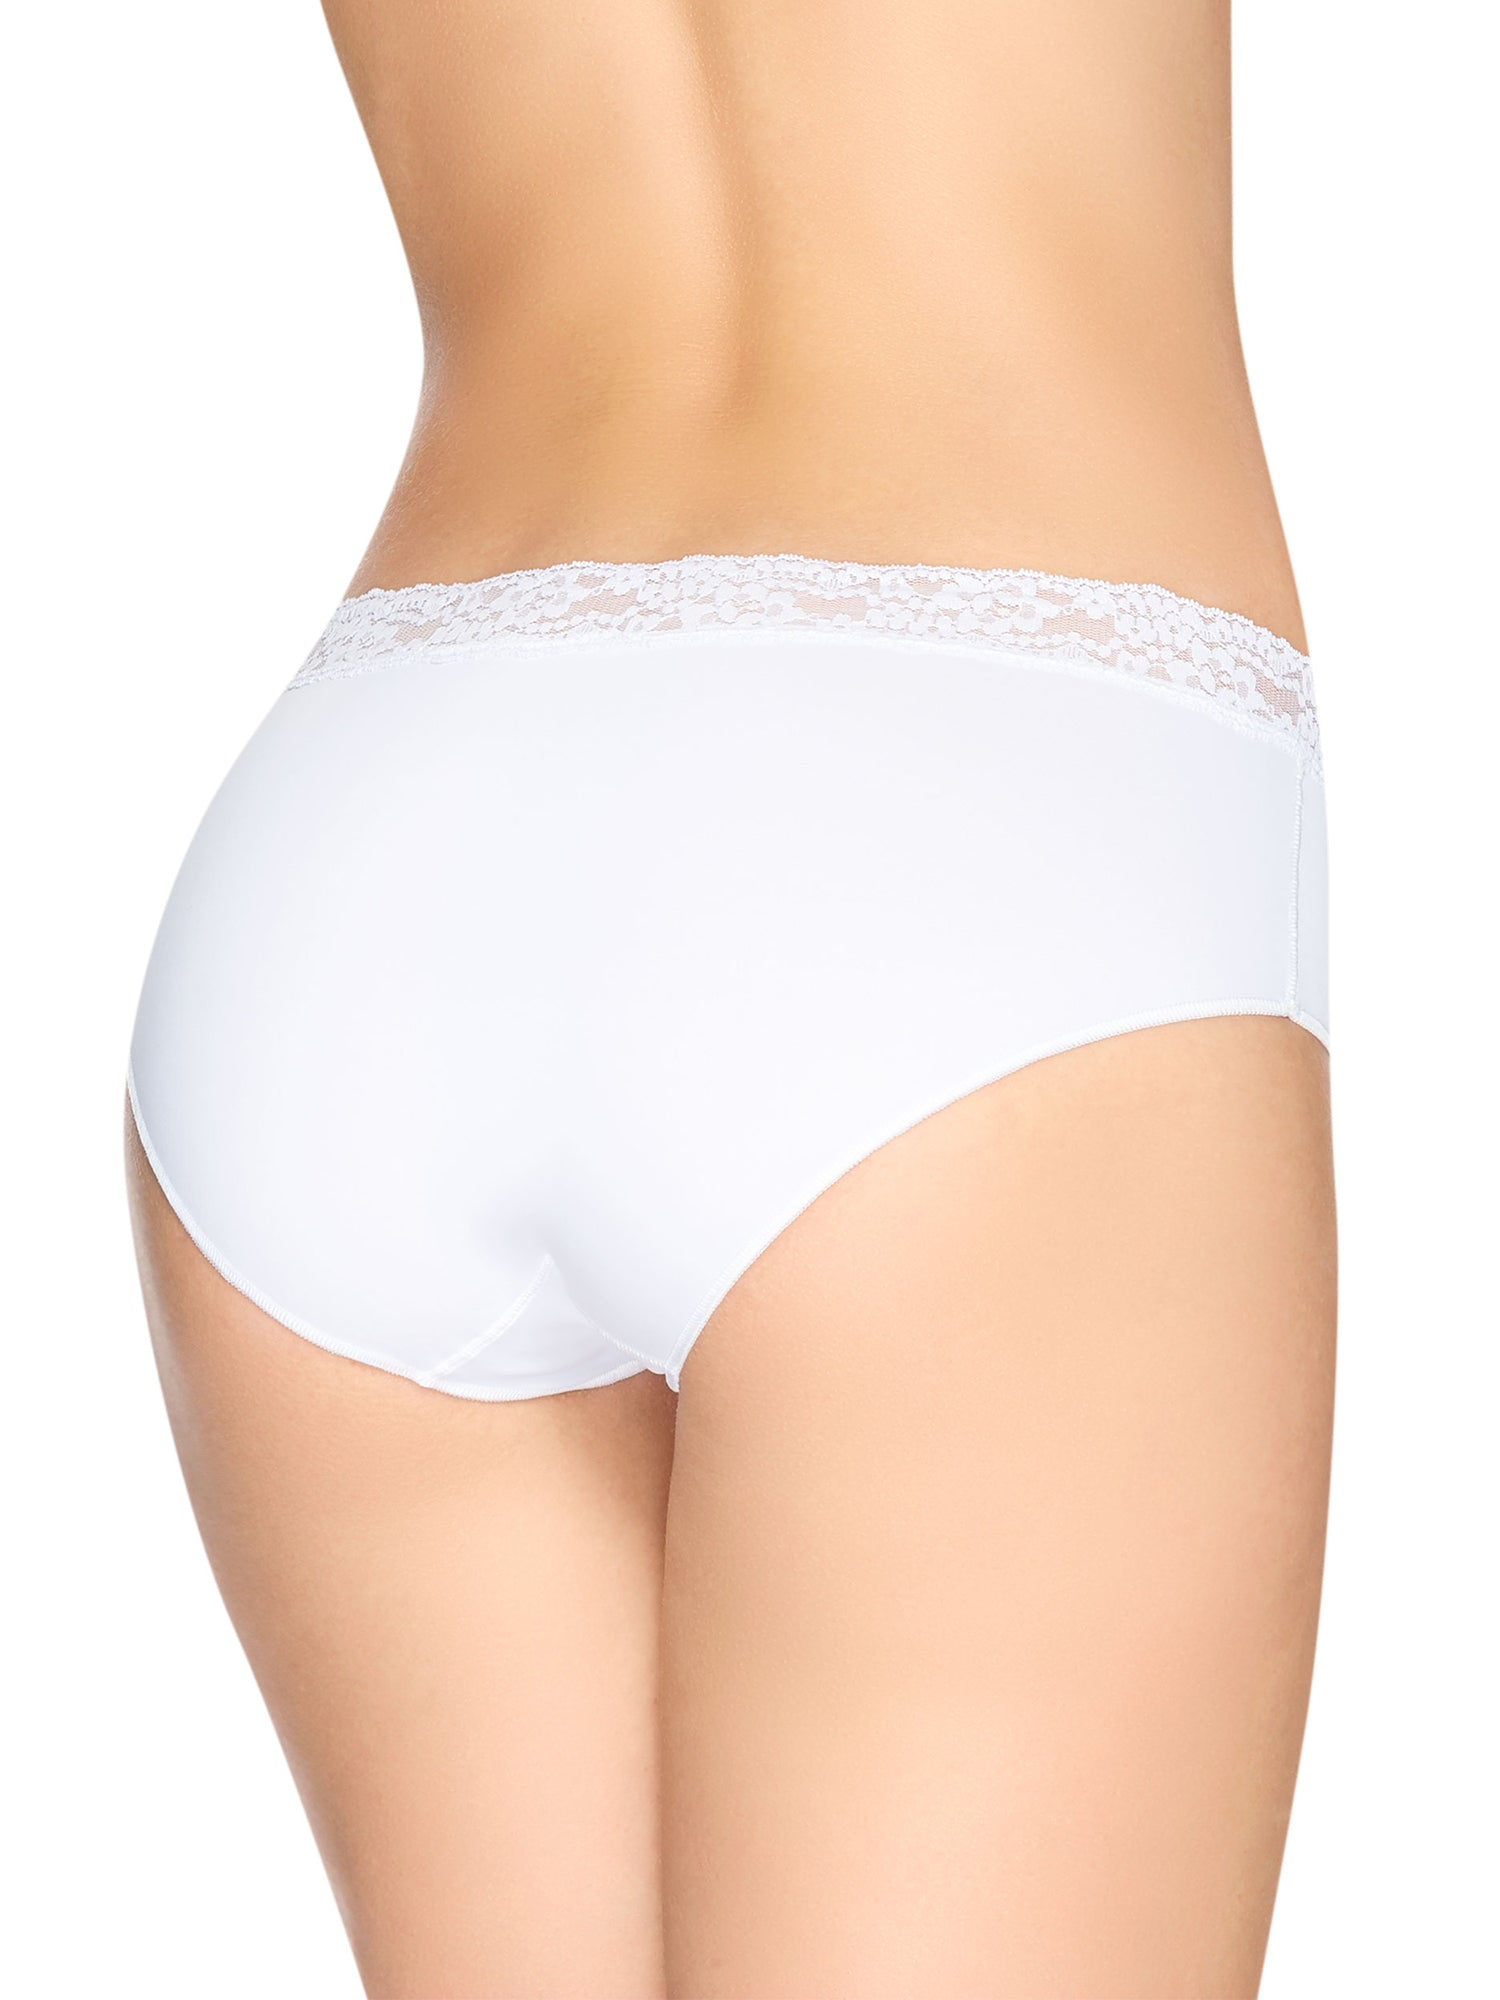 Sunrise Panty 3-Pack 34577